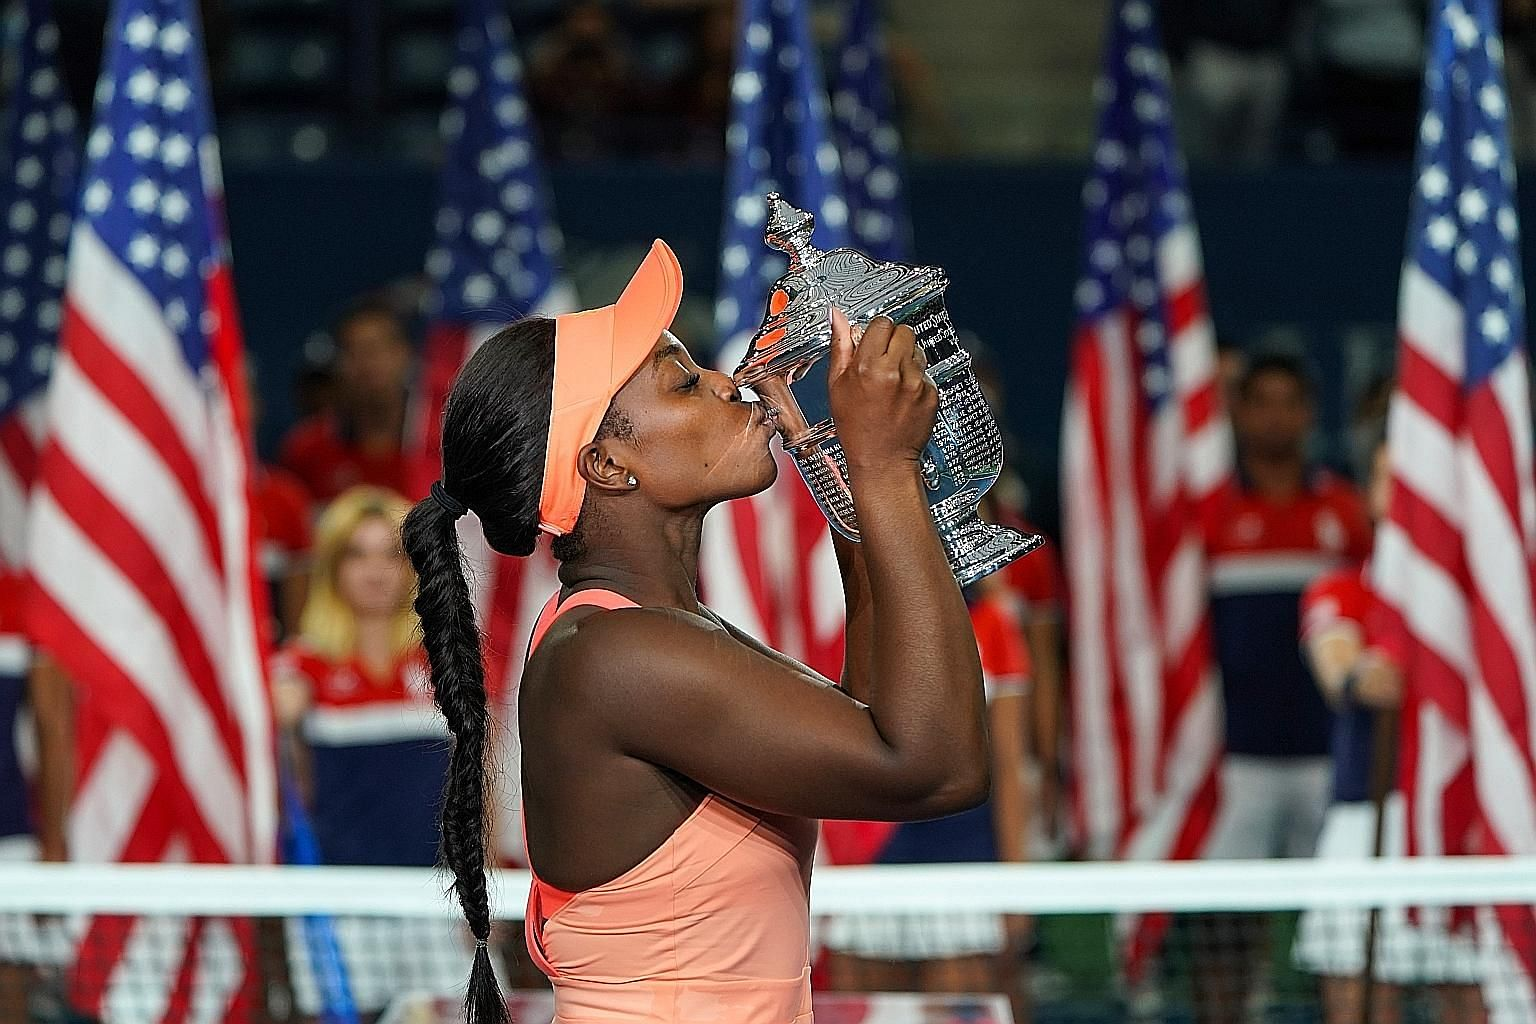 Sloane Stephens savouring sweet success after drubbing compatriot Madison Keys in the US Open final on Saturday.